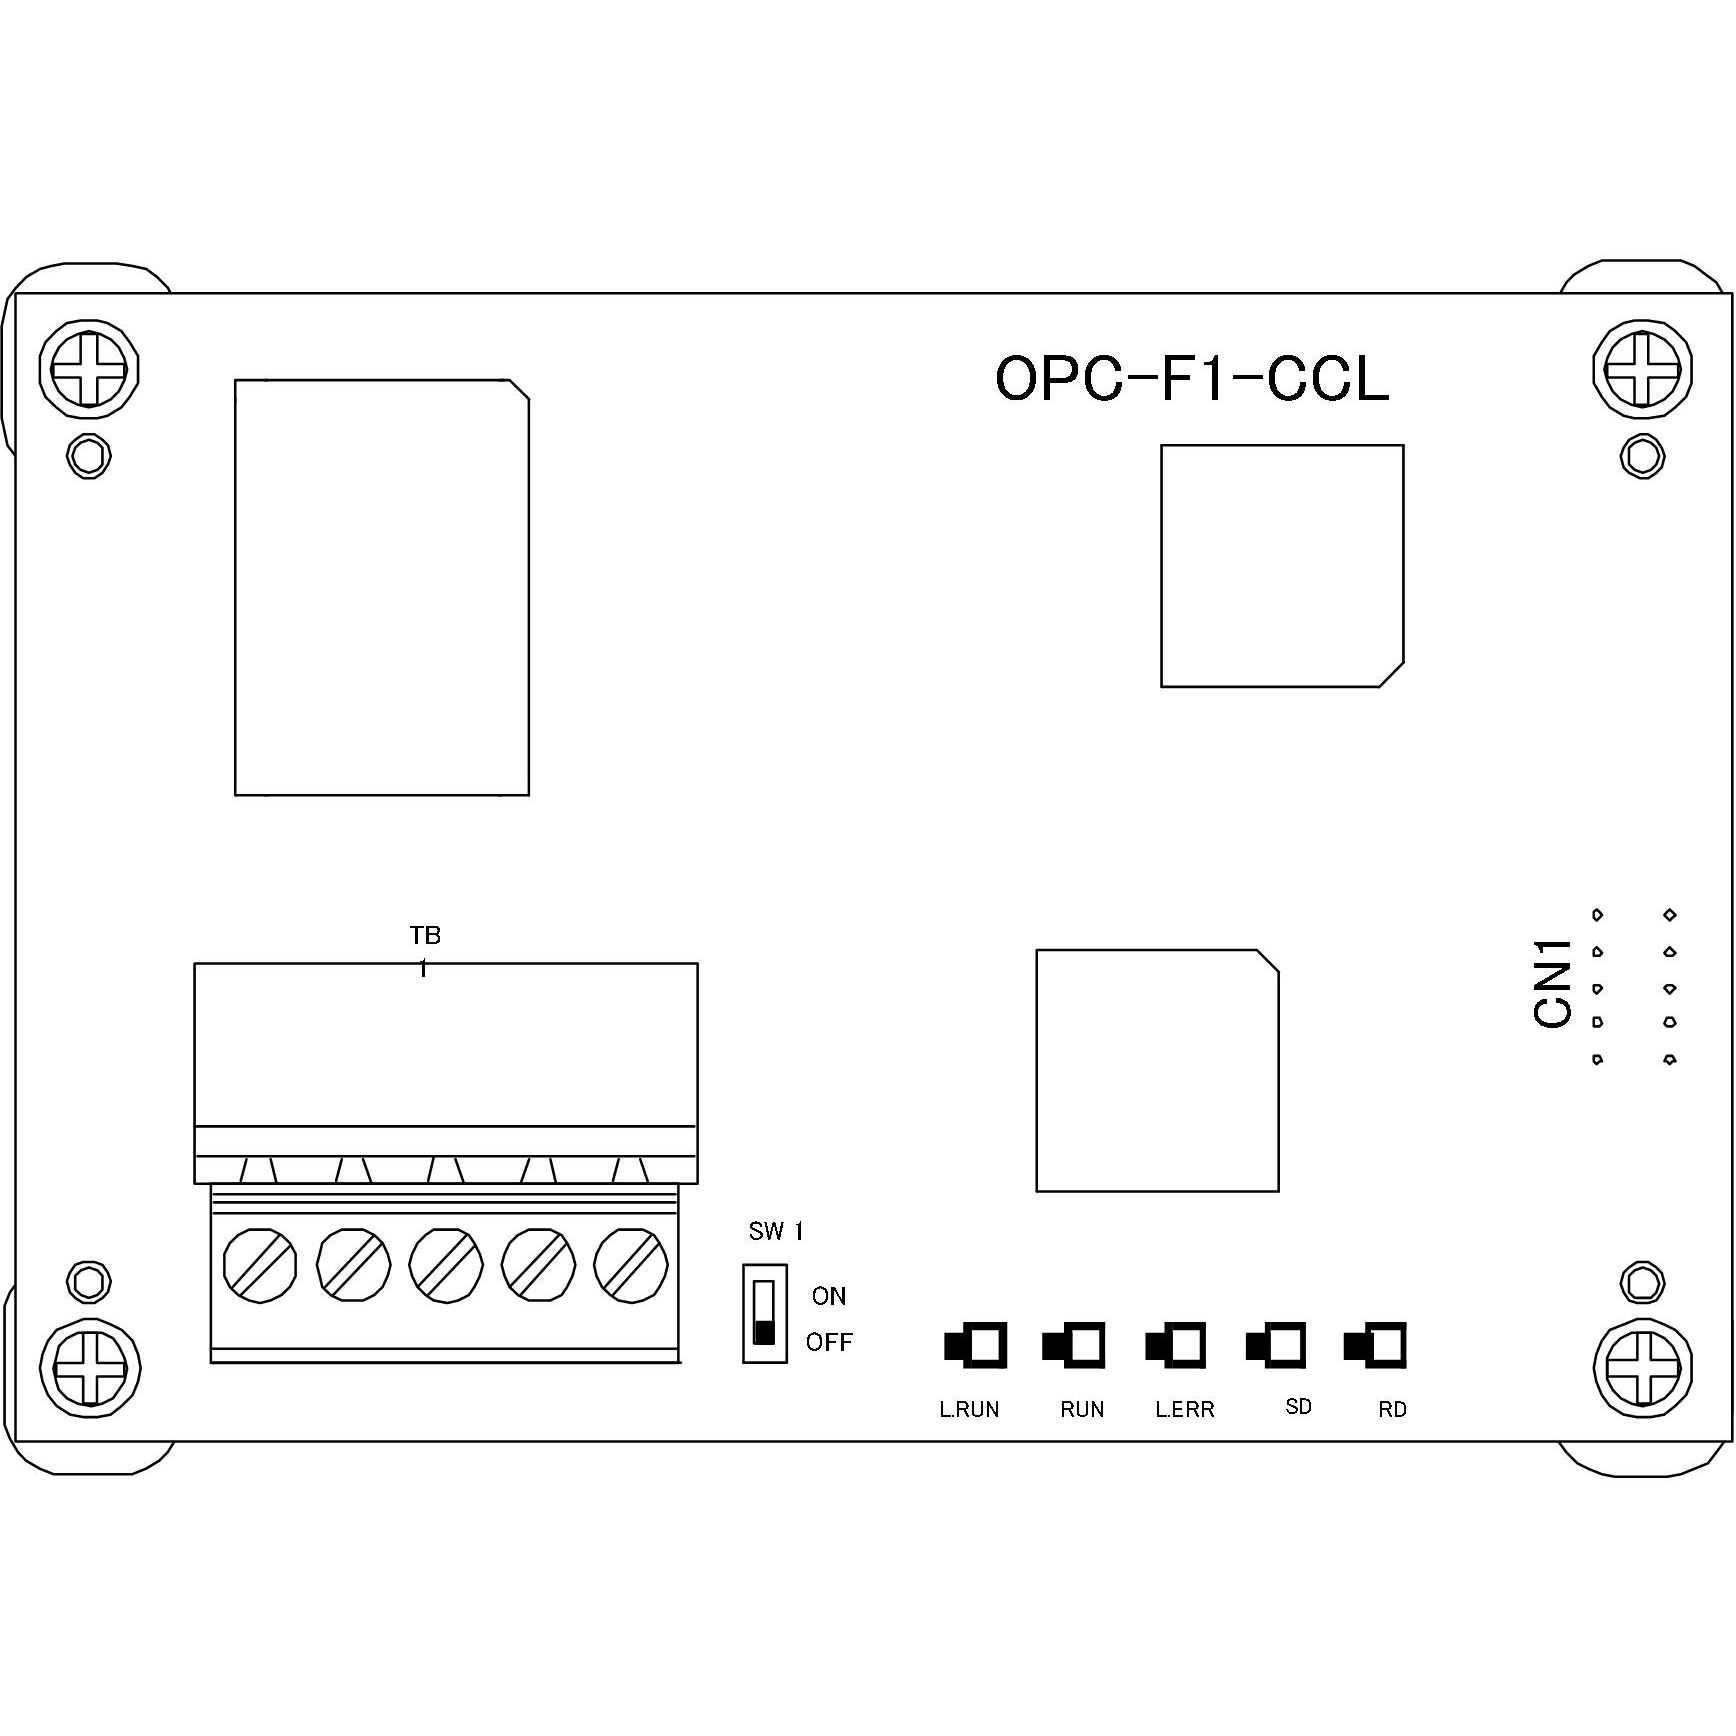 OPC-F1-CCL CC-link Communication Card